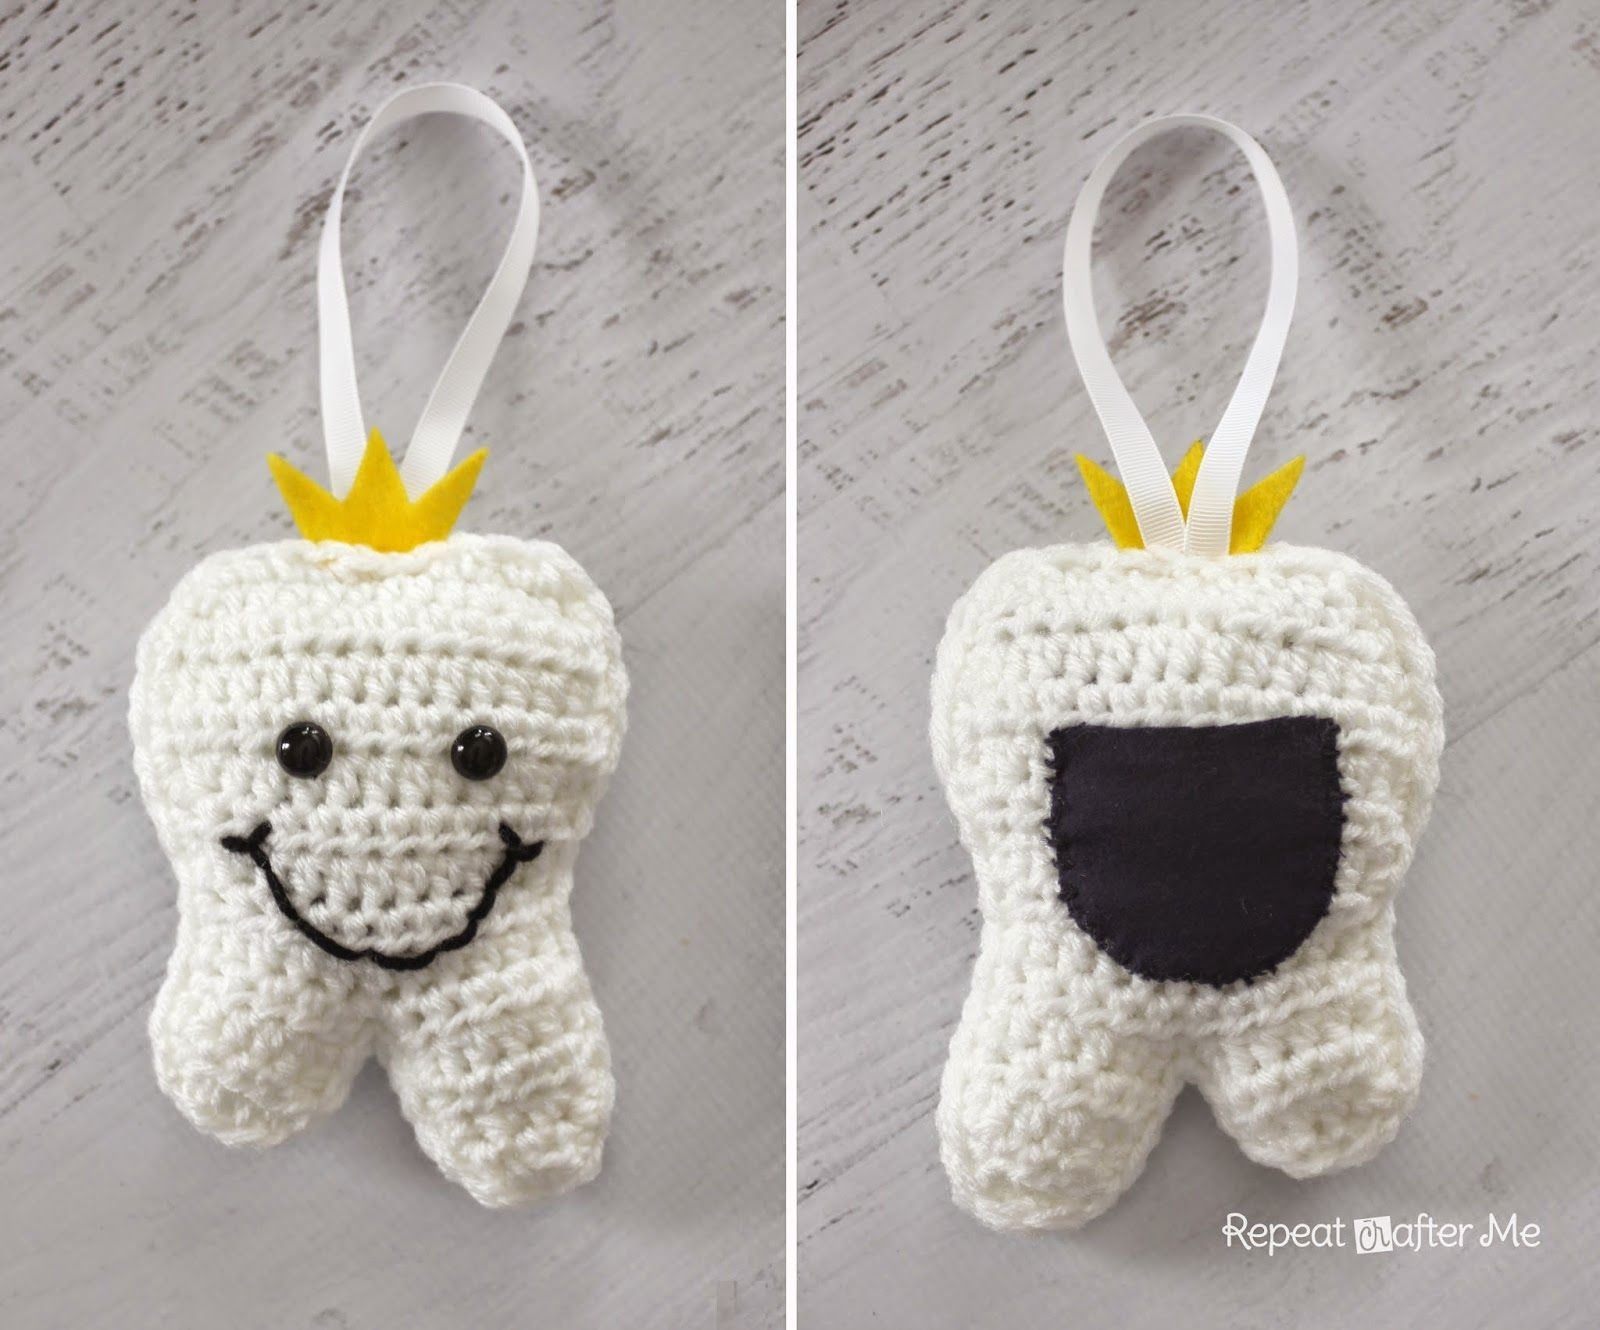 Crochet Tooth Fairy Pillow (Repeat Crafter Me) | Schneemann, Häkeln ...